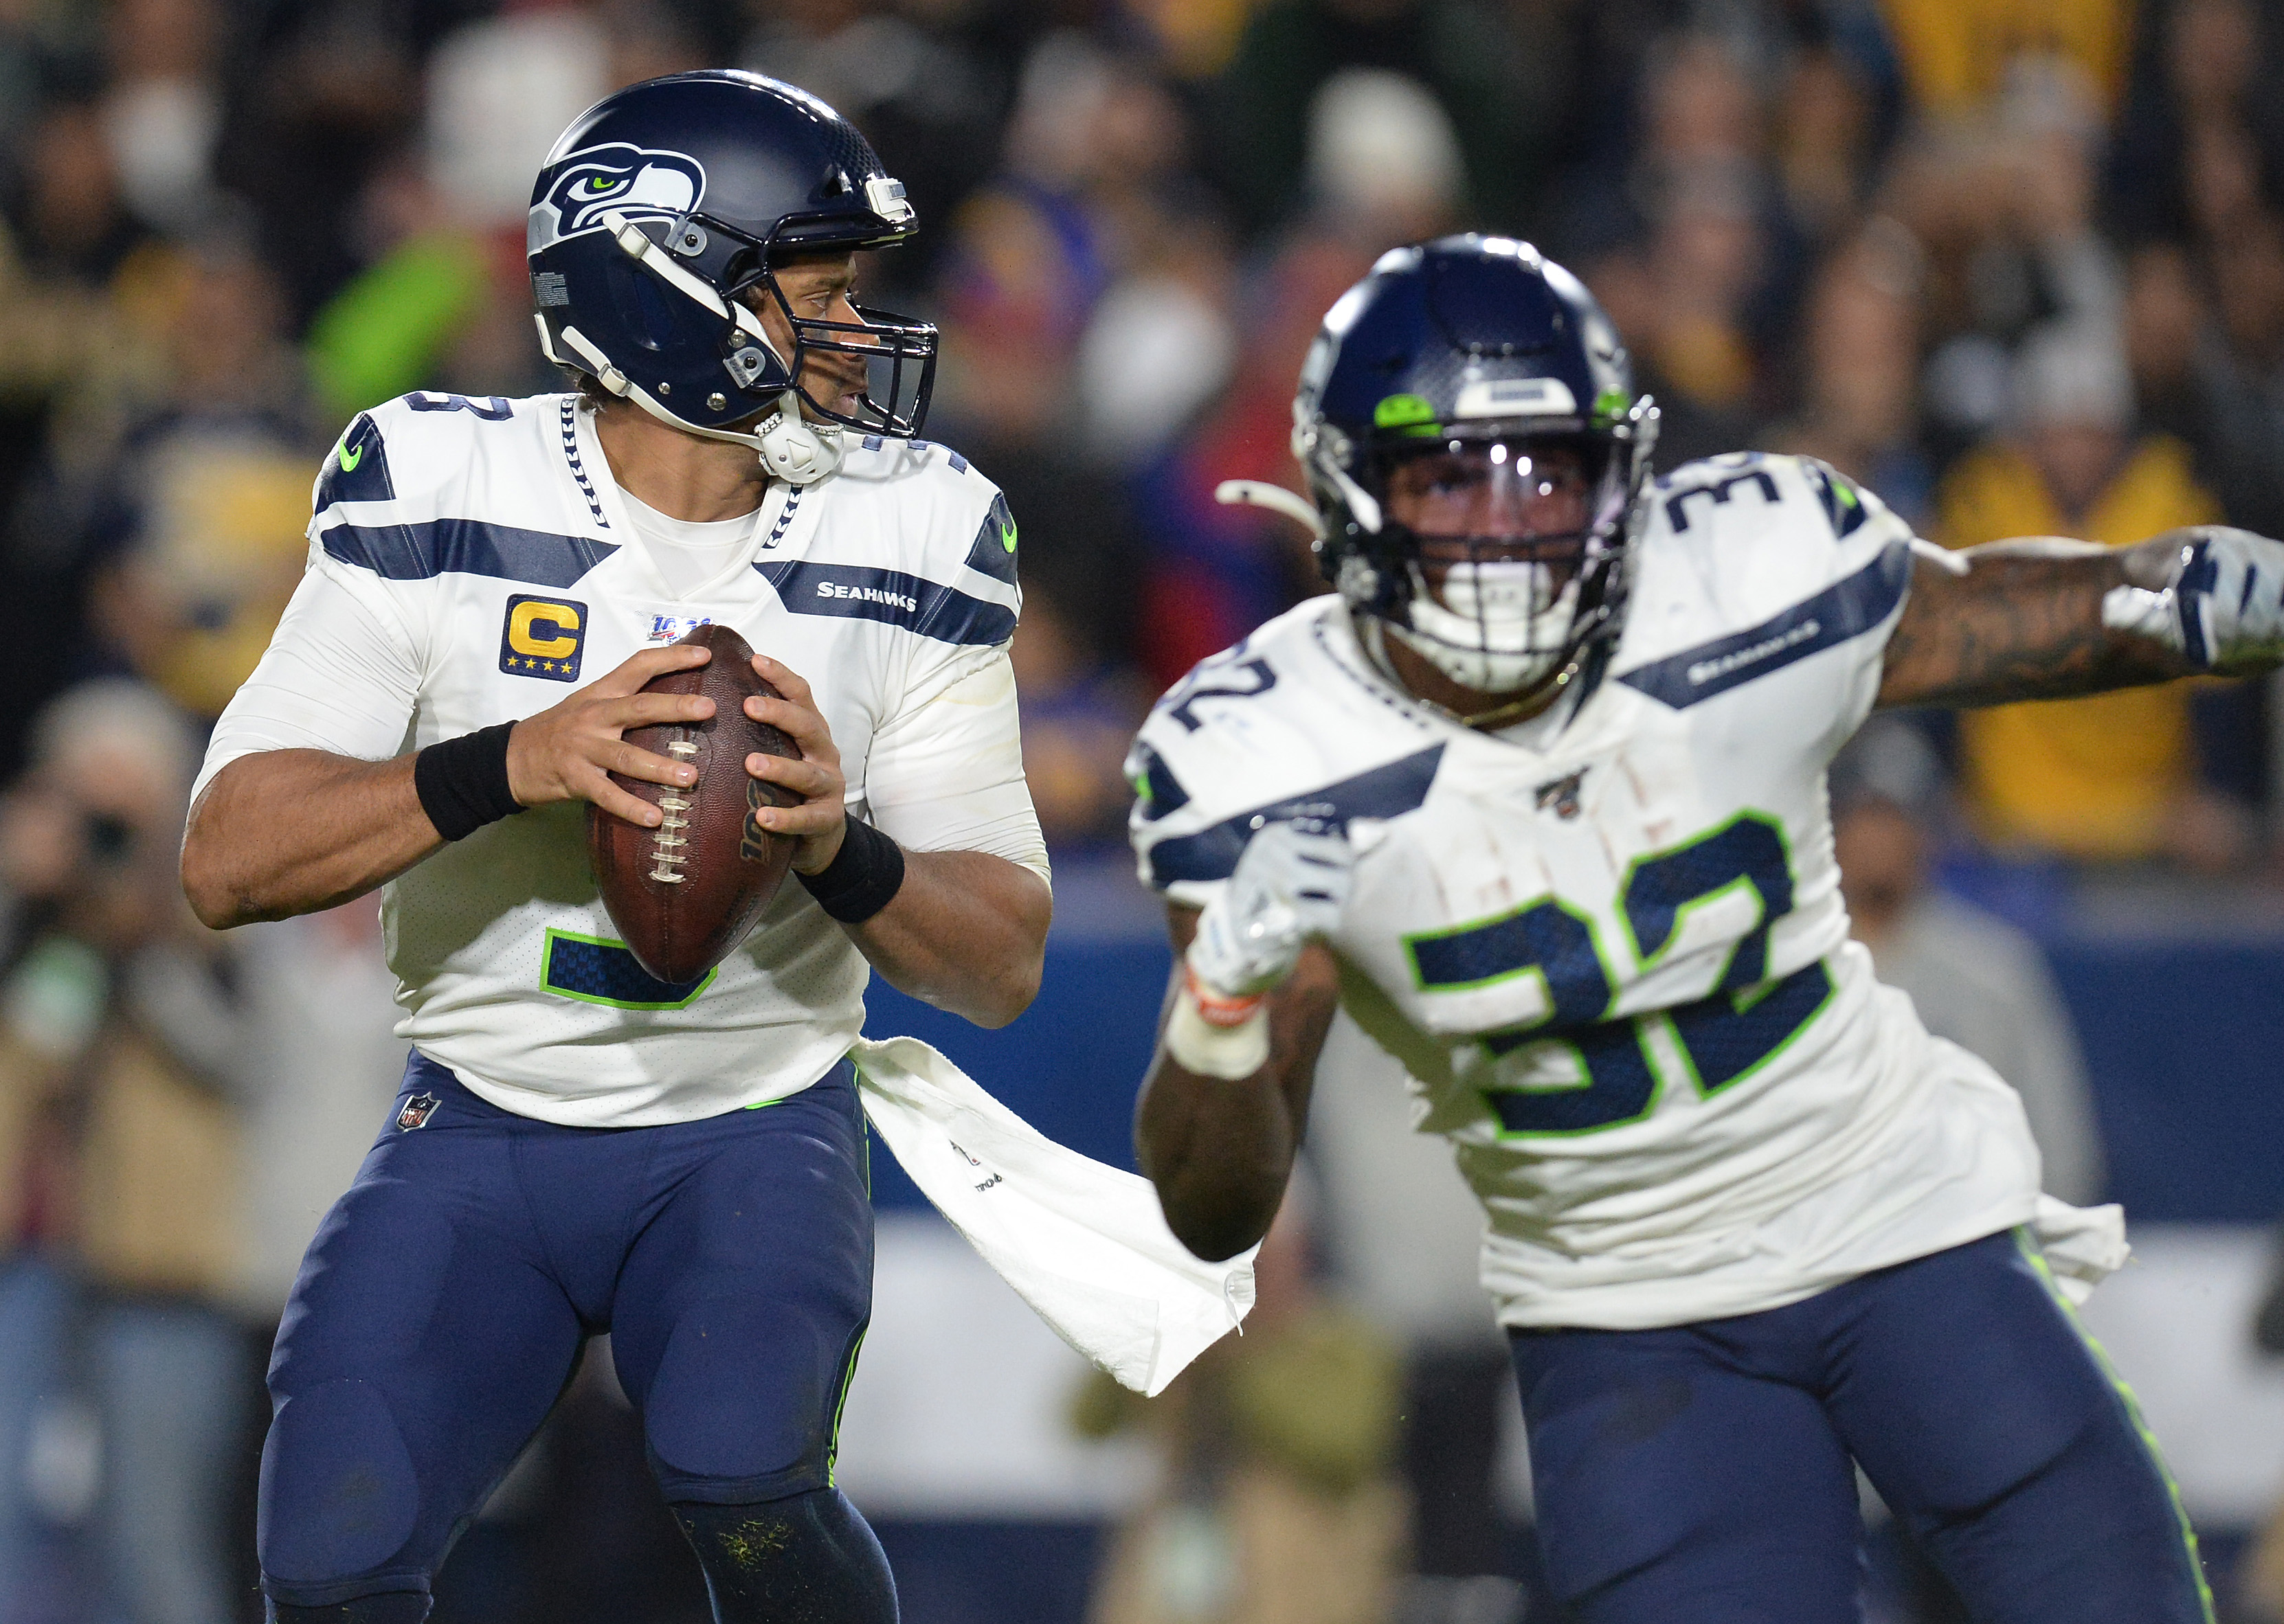 Seattle Seahawks quarterback Russell Wilson drops back to pass as running back Chris Carson provides coverage against the Los Angeles Rams during the second half at the Los Angeles Memorial Coliseum.